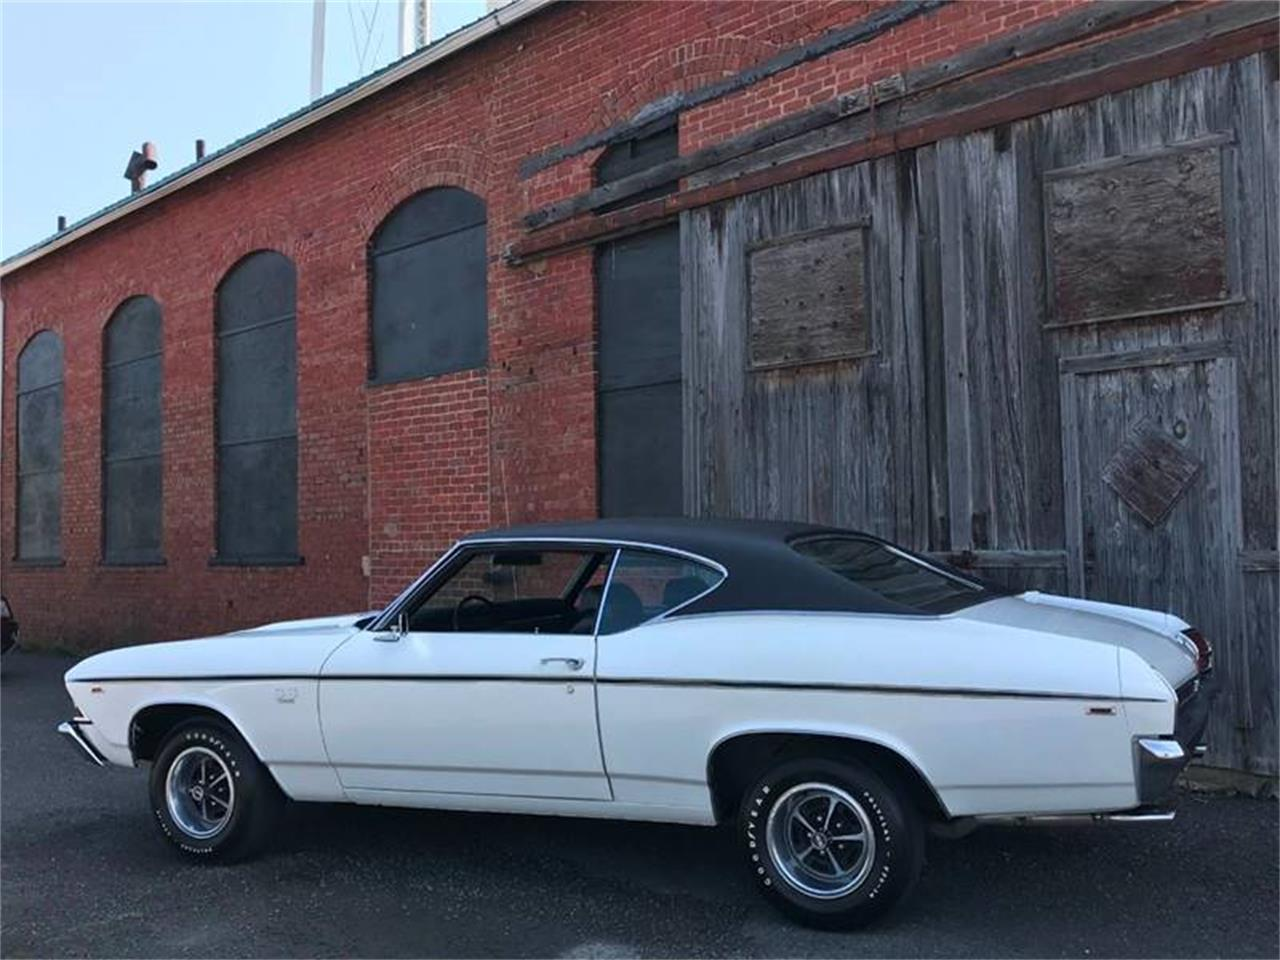 1969 Chevrolet Chevelle for sale in Orville, OH – photo 8